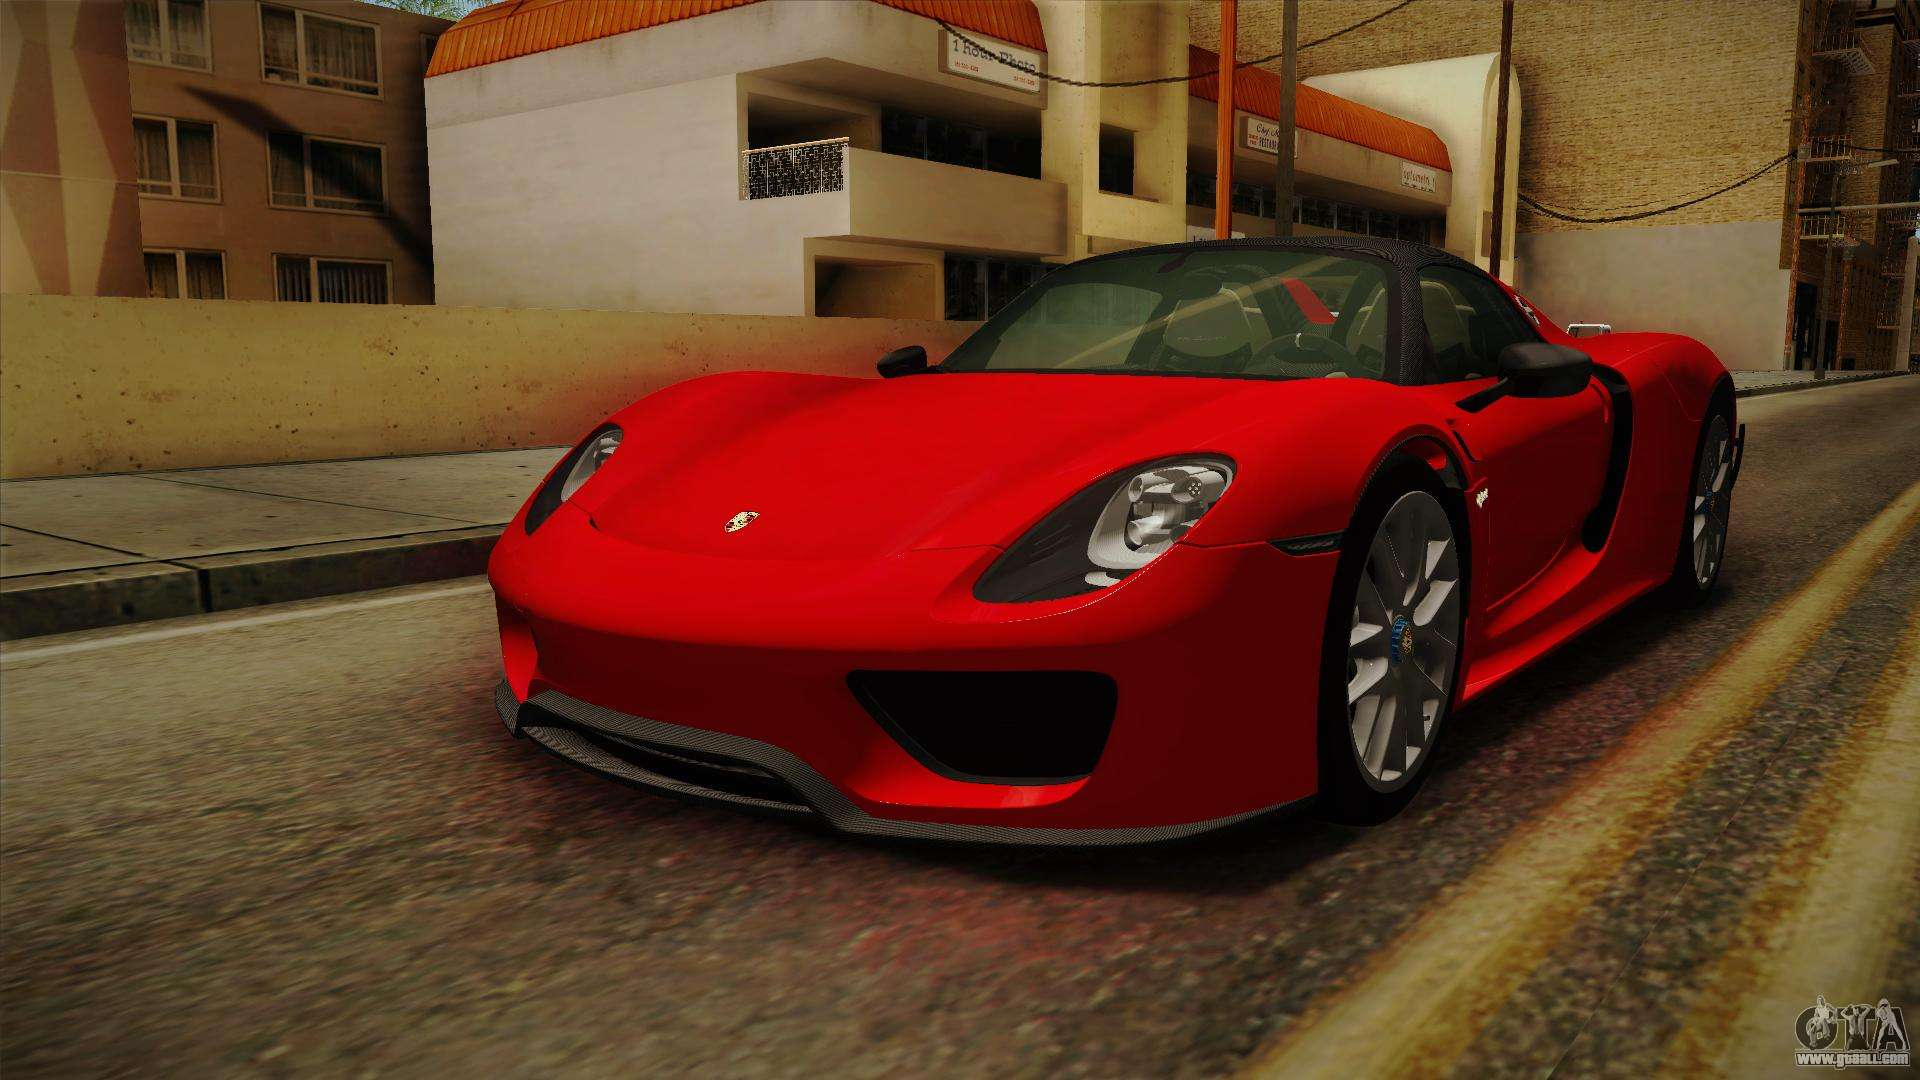 porsche 918 spyder mod gta sa porsche 918 spyder 2013 for gta san andreas porsche 918 spyder. Black Bedroom Furniture Sets. Home Design Ideas